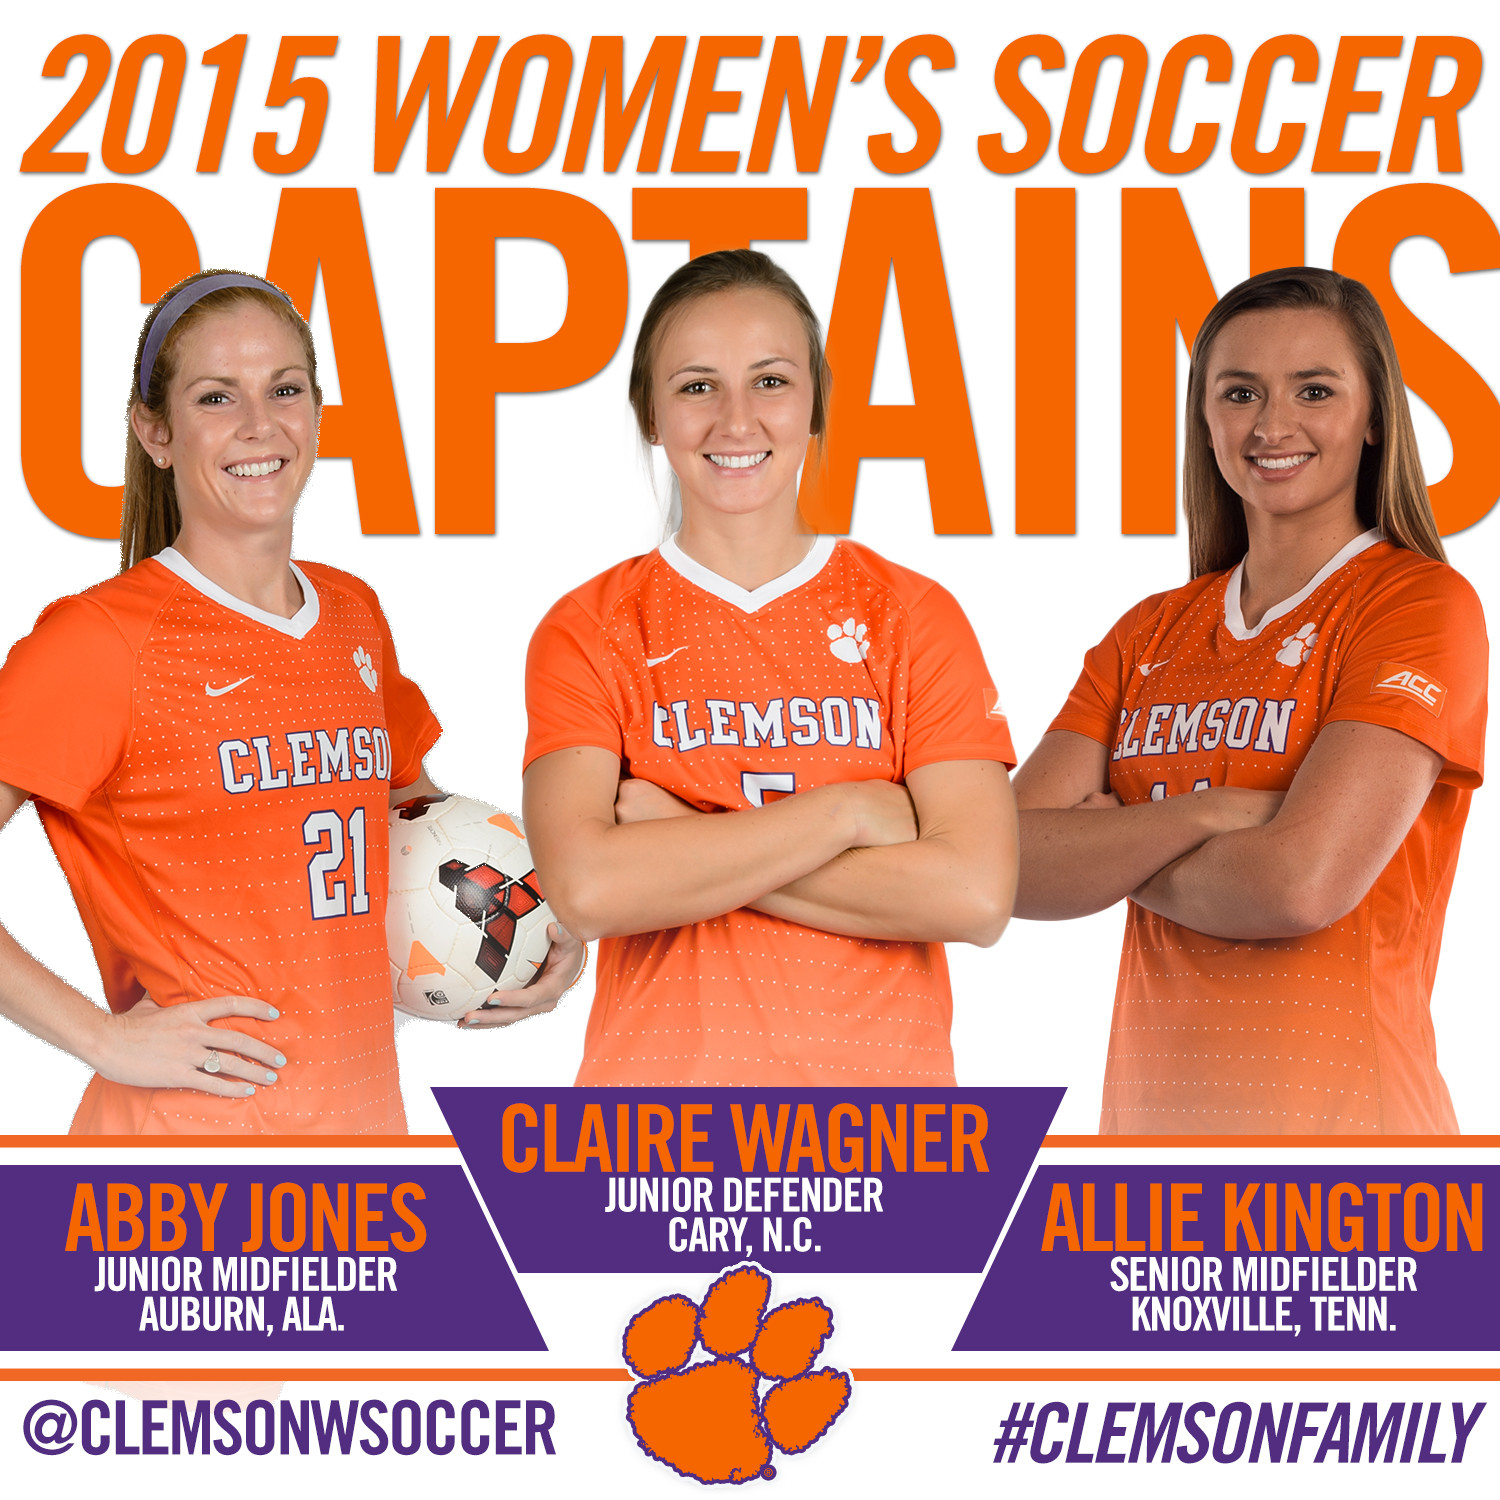 Radwanski Announces Captains for 2015 Season